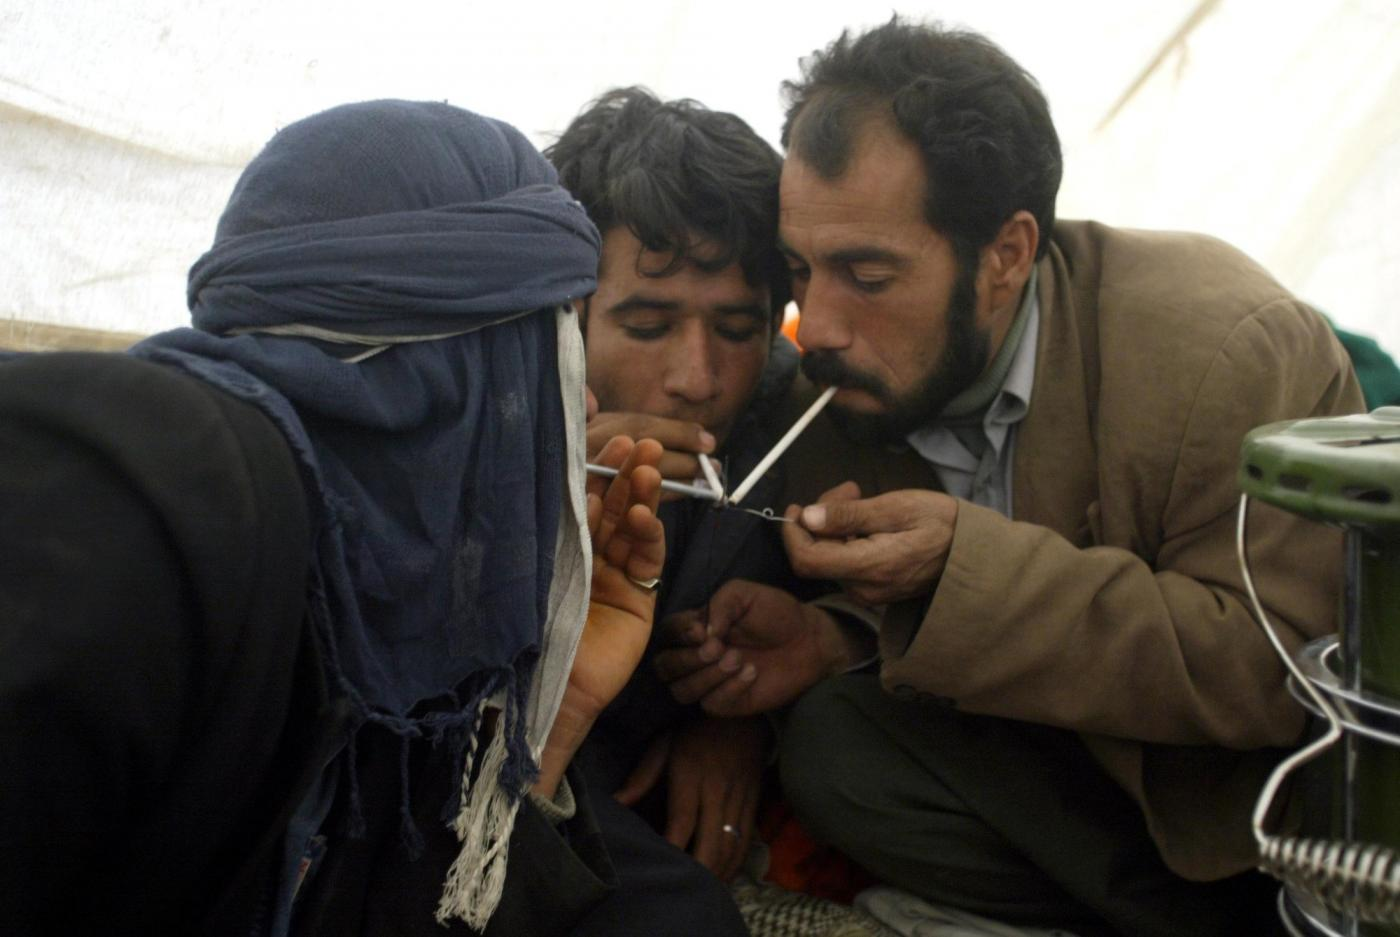 Iranian men smoke opium in a tent in the southeastern Iranian city of Bam on 31 December 2003 (AFP)